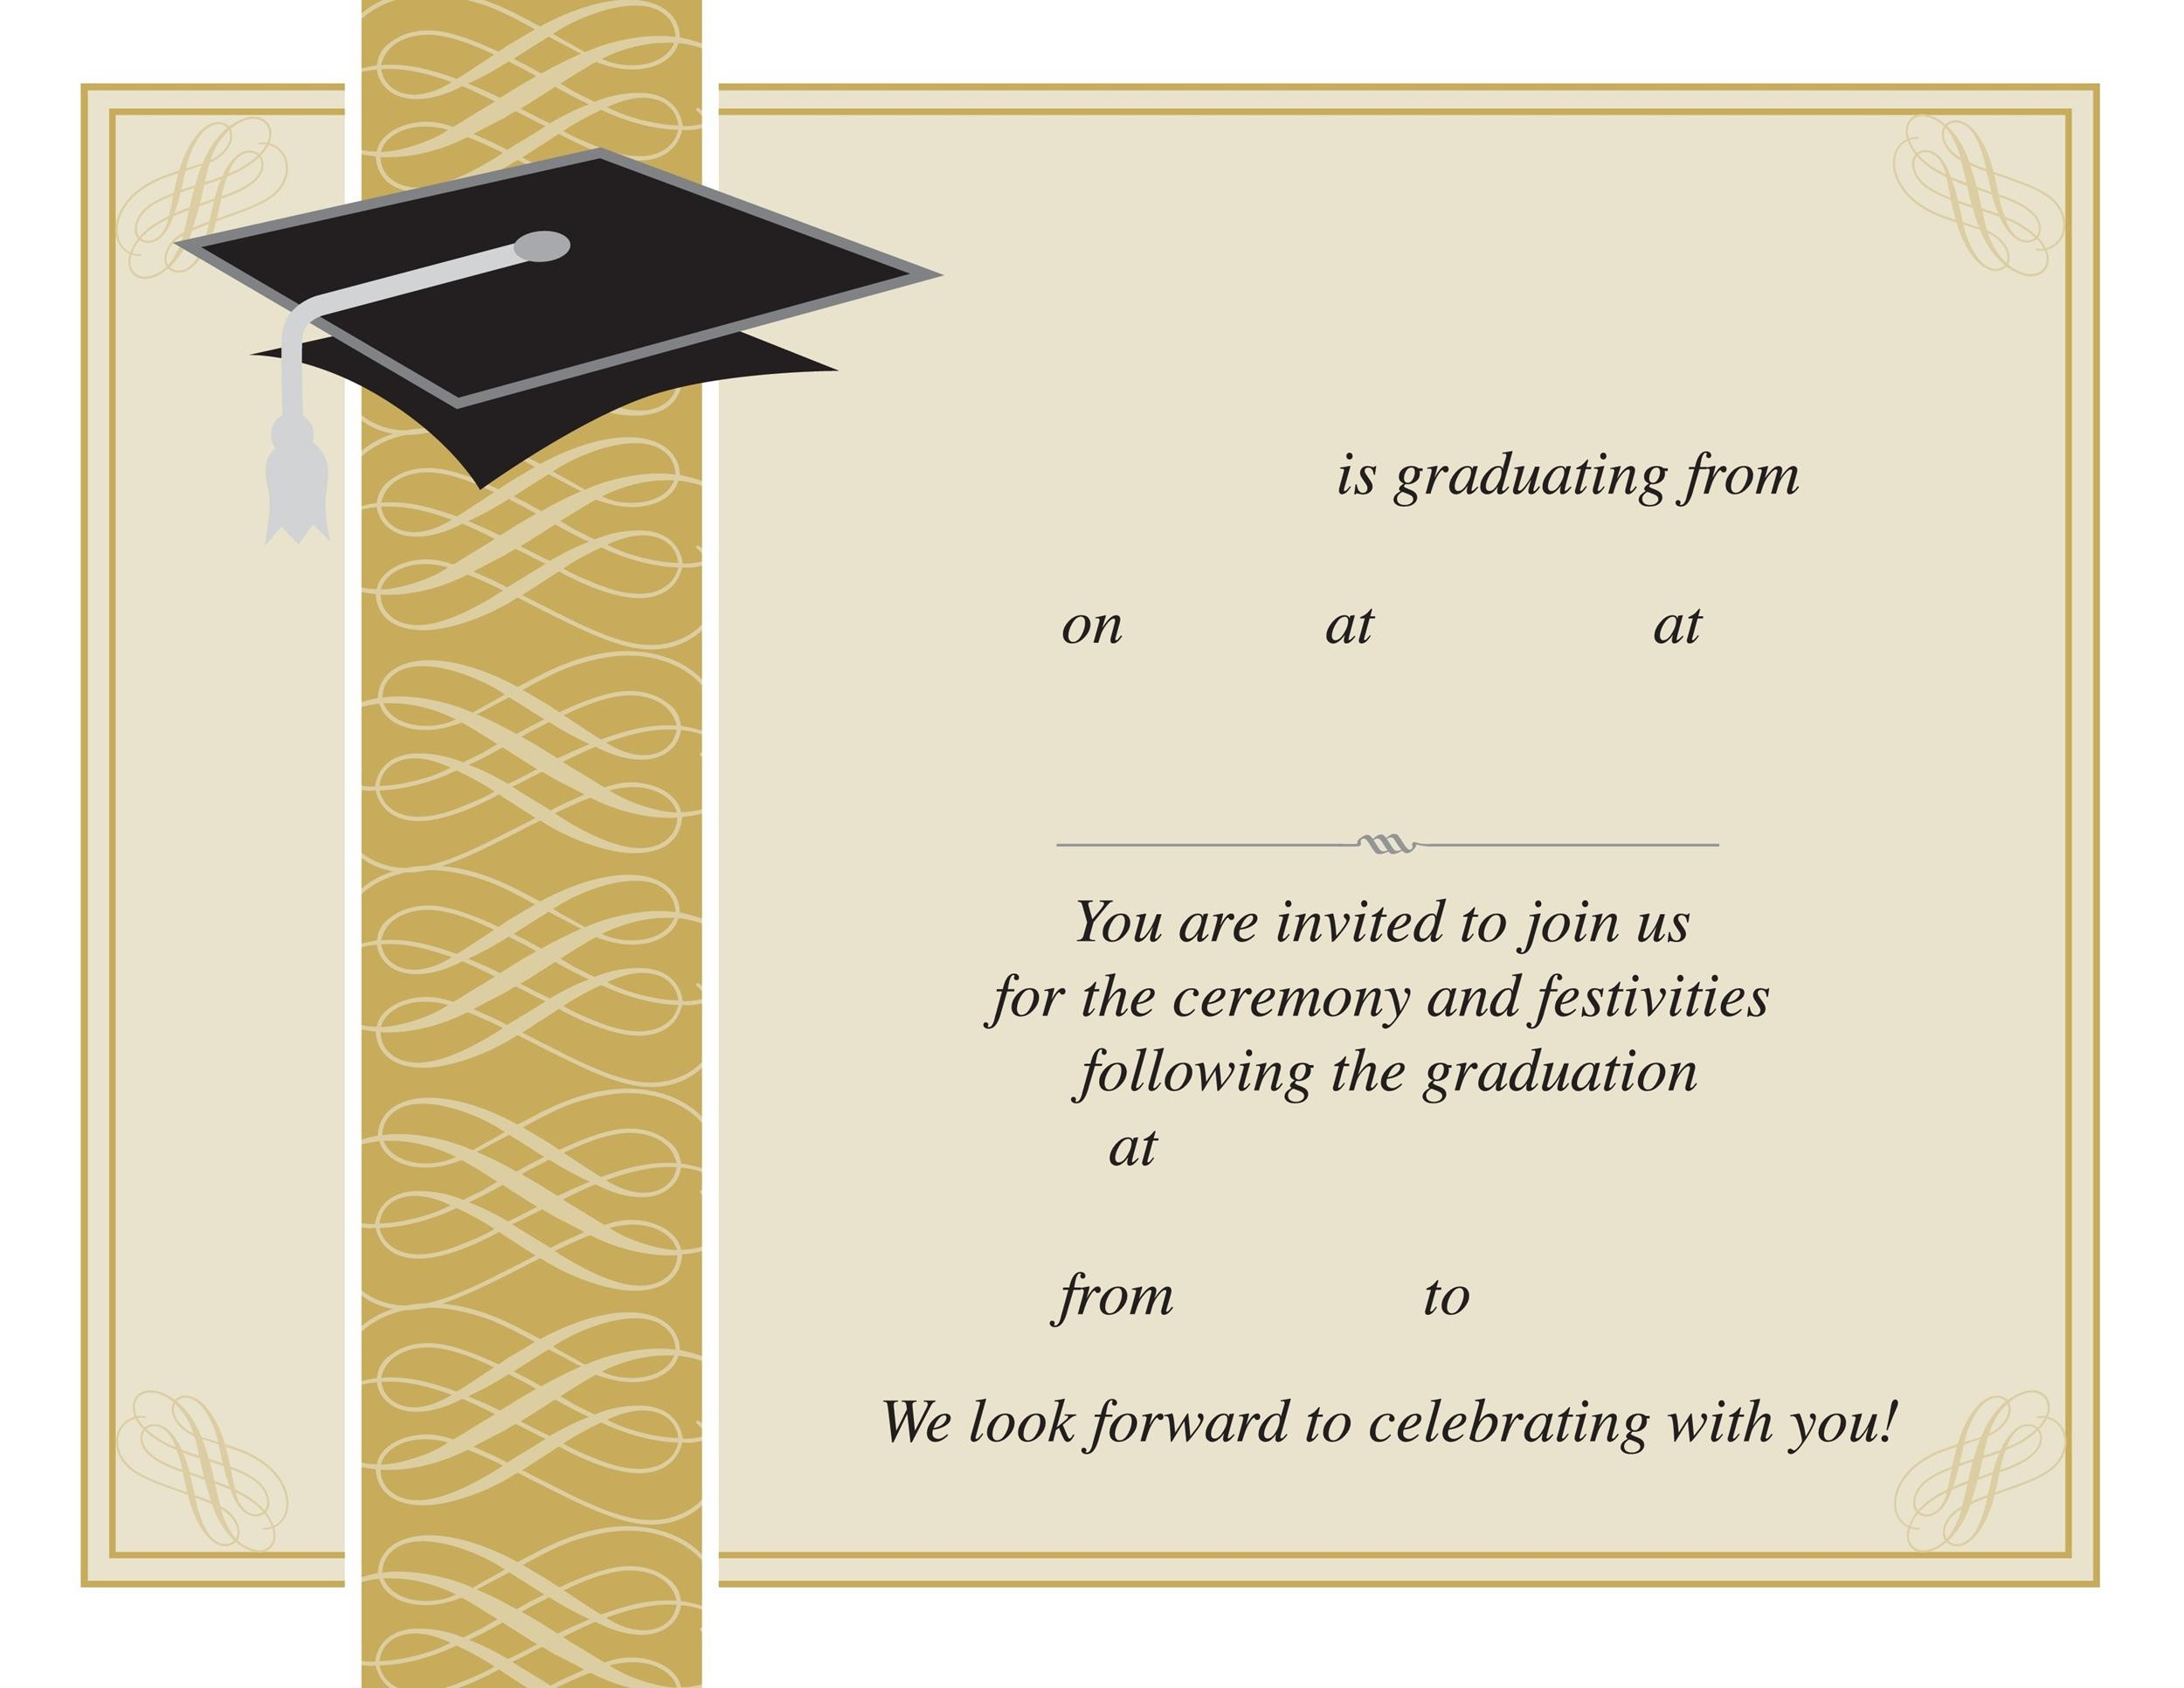 Mesmerizing image inside free printable graduation invitation templates